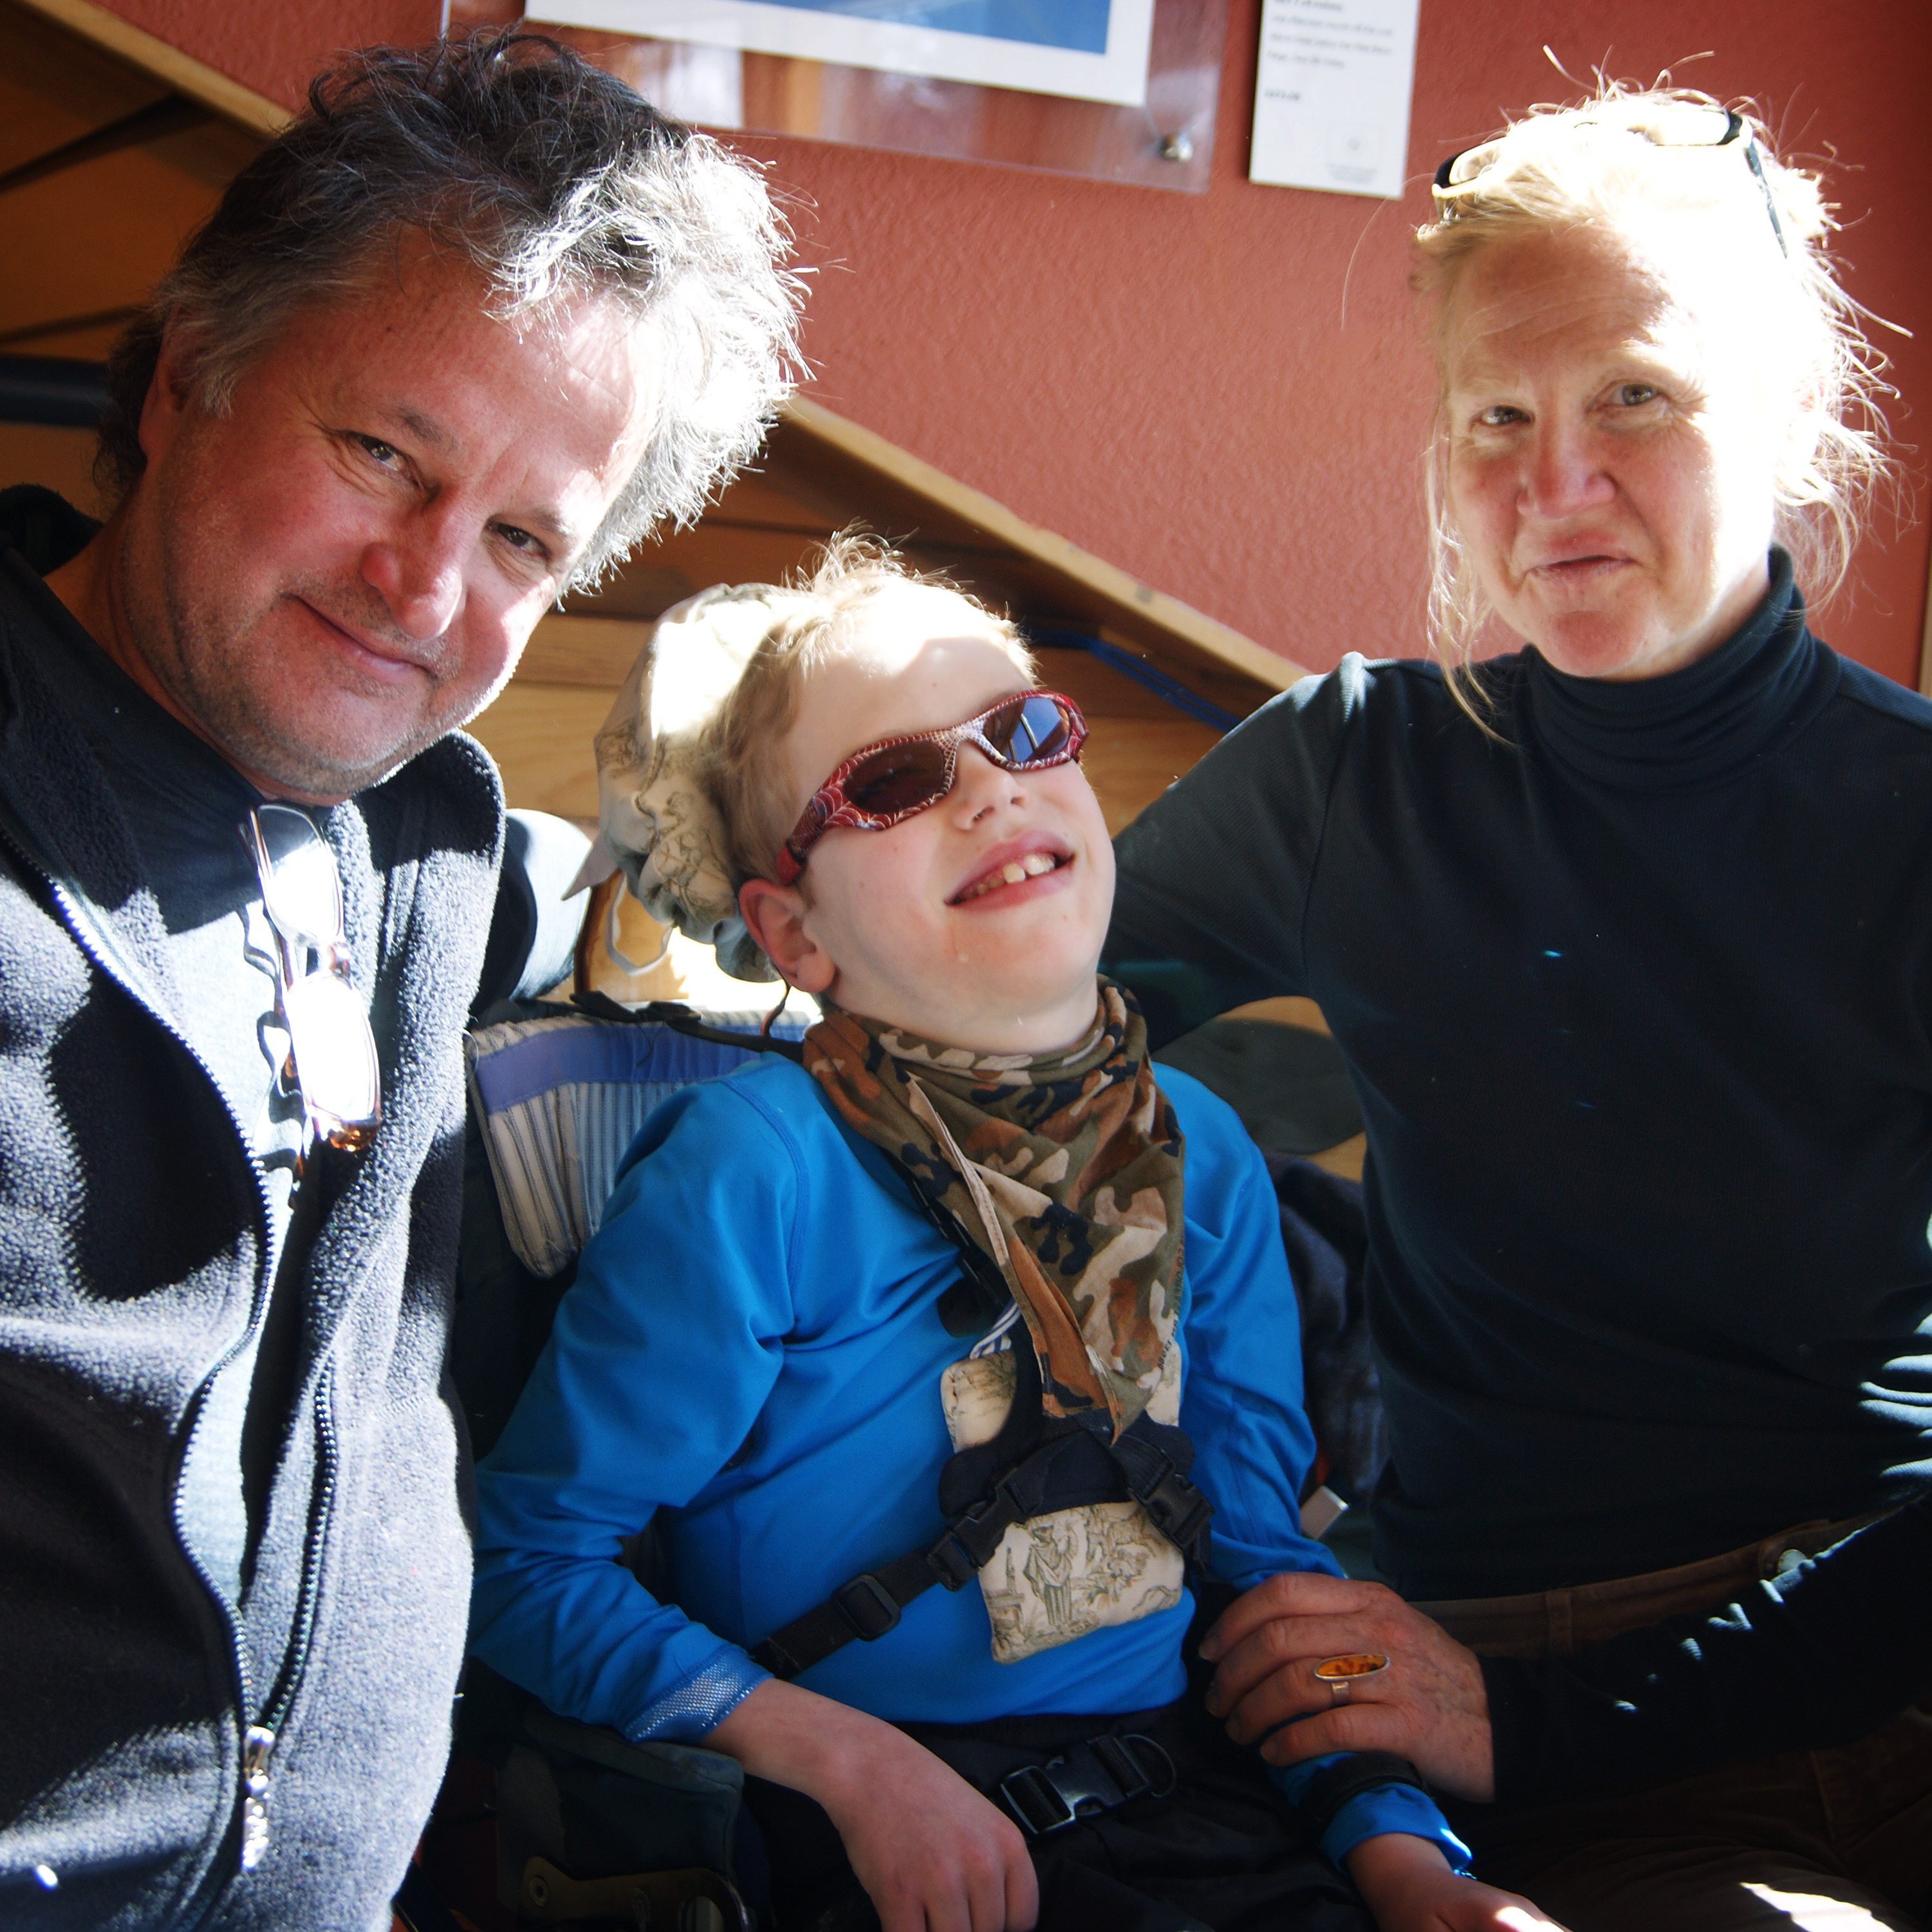 The Logan family -- Philip, Tilghman and Barbara -- traveled from New York City to New Mexico to vacation at a ski lodge that can accommodate Tilghman's needs.